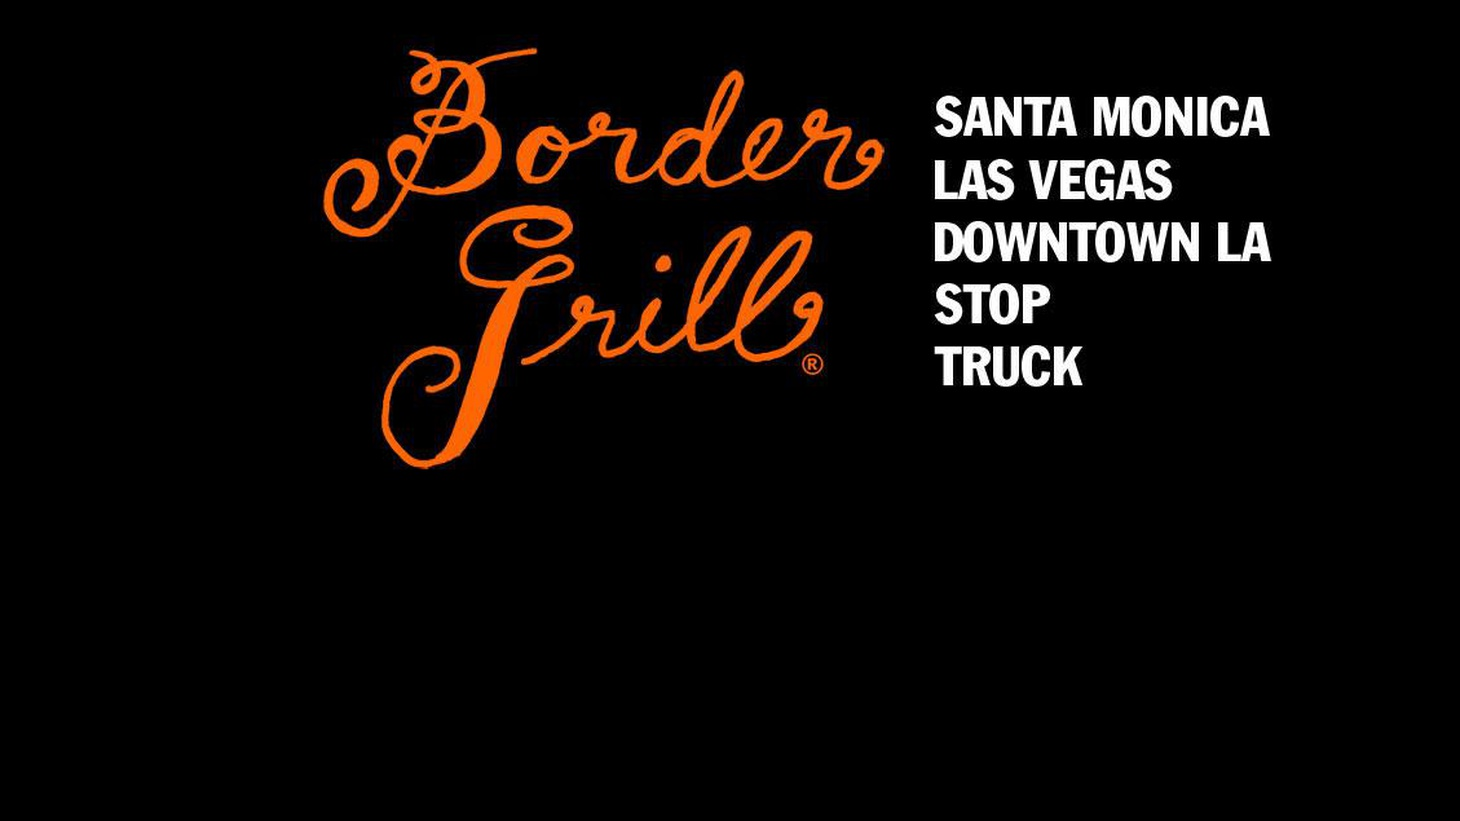 Jonathan Gold reviews Border Grill, which just opened a new branch in the old Ciudad space in Downtown LA. Jonathan likes their cochinita pibil, the chile rellenos, carnitas and the goat milk cajeta flan.